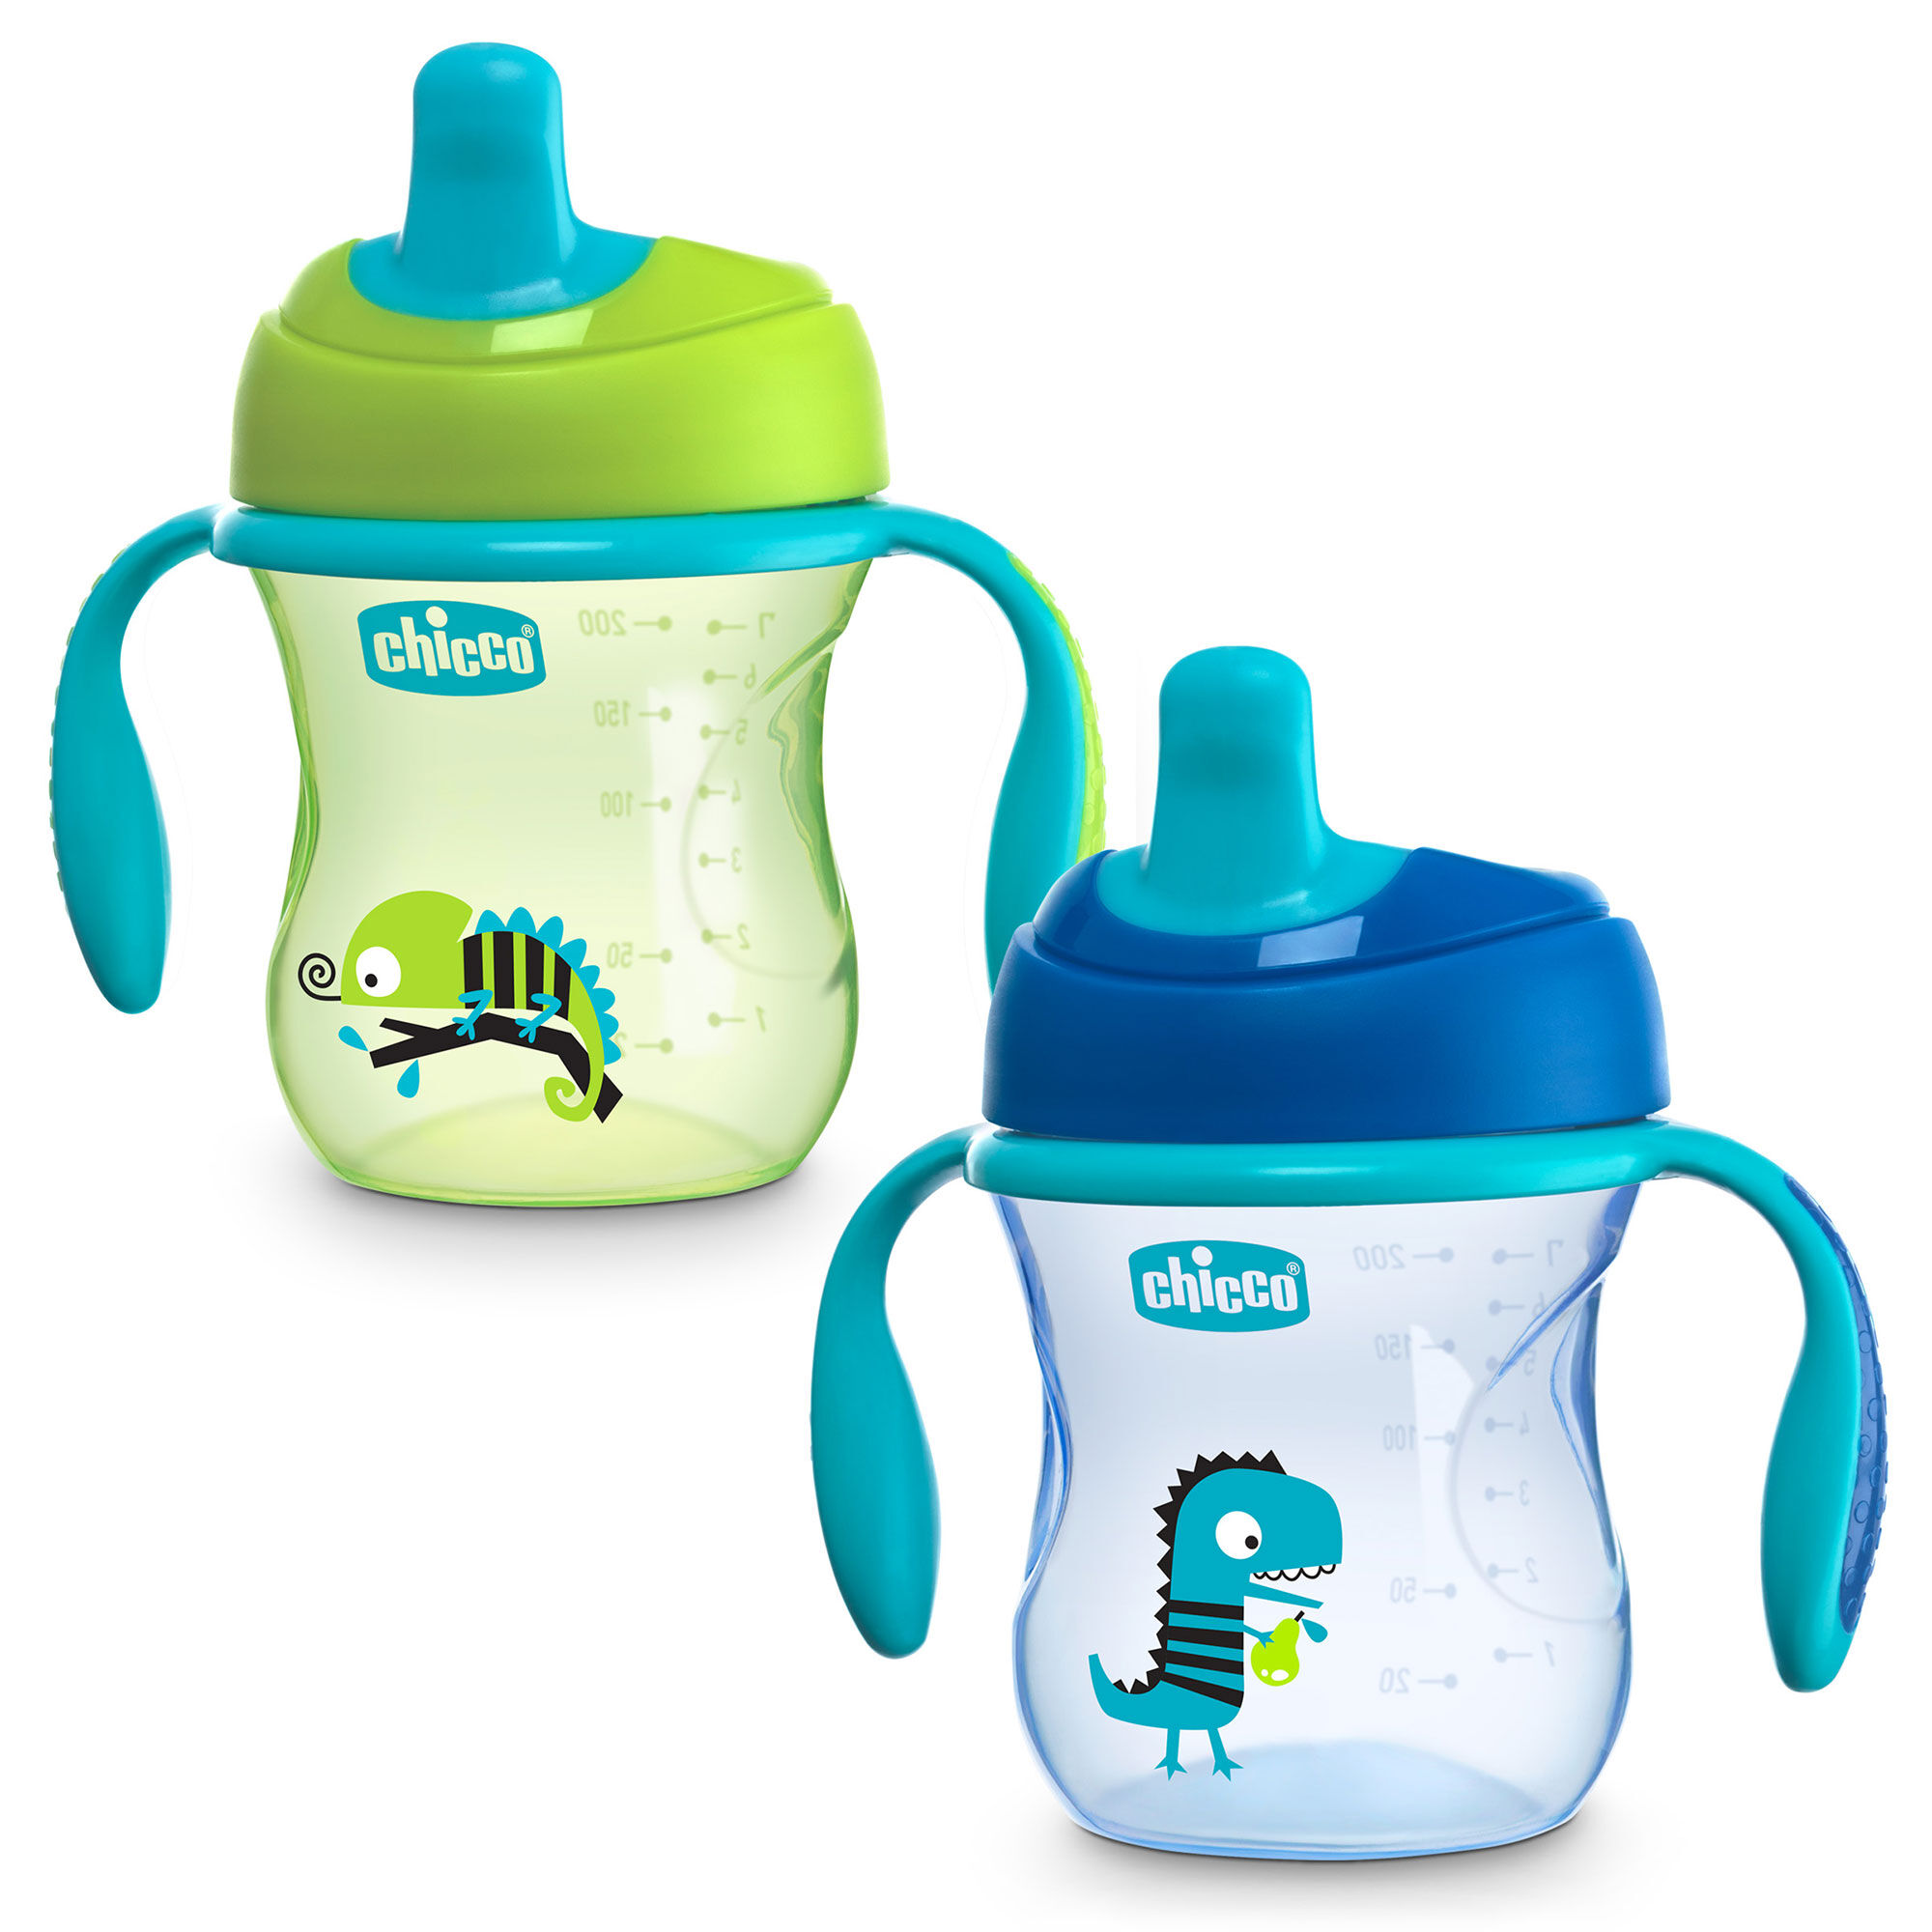 Chicco Semi-soft Spout Trainer Cup